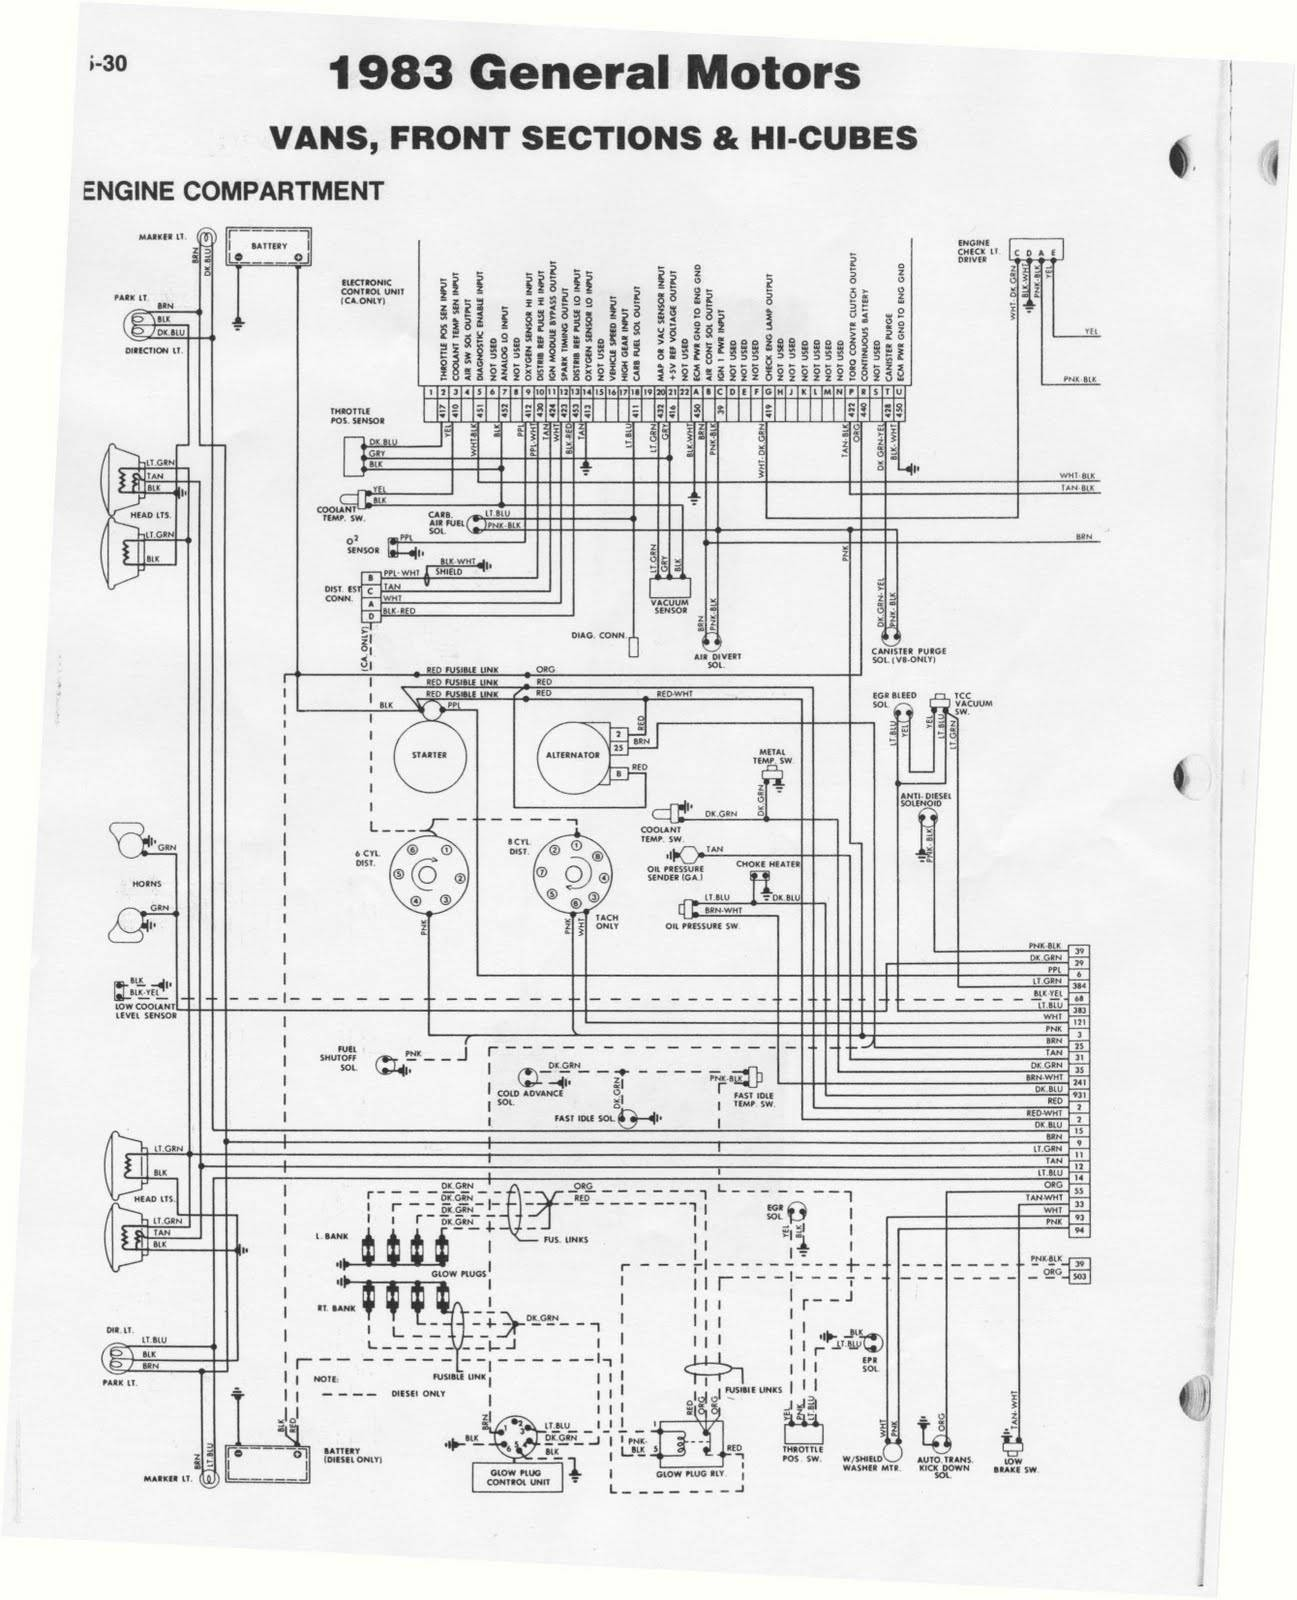 Chassis Parts Diagram Freightliner Xc Chassis Parts Diagram Inspirational Typical Wiring Of Chassis Parts Diagram